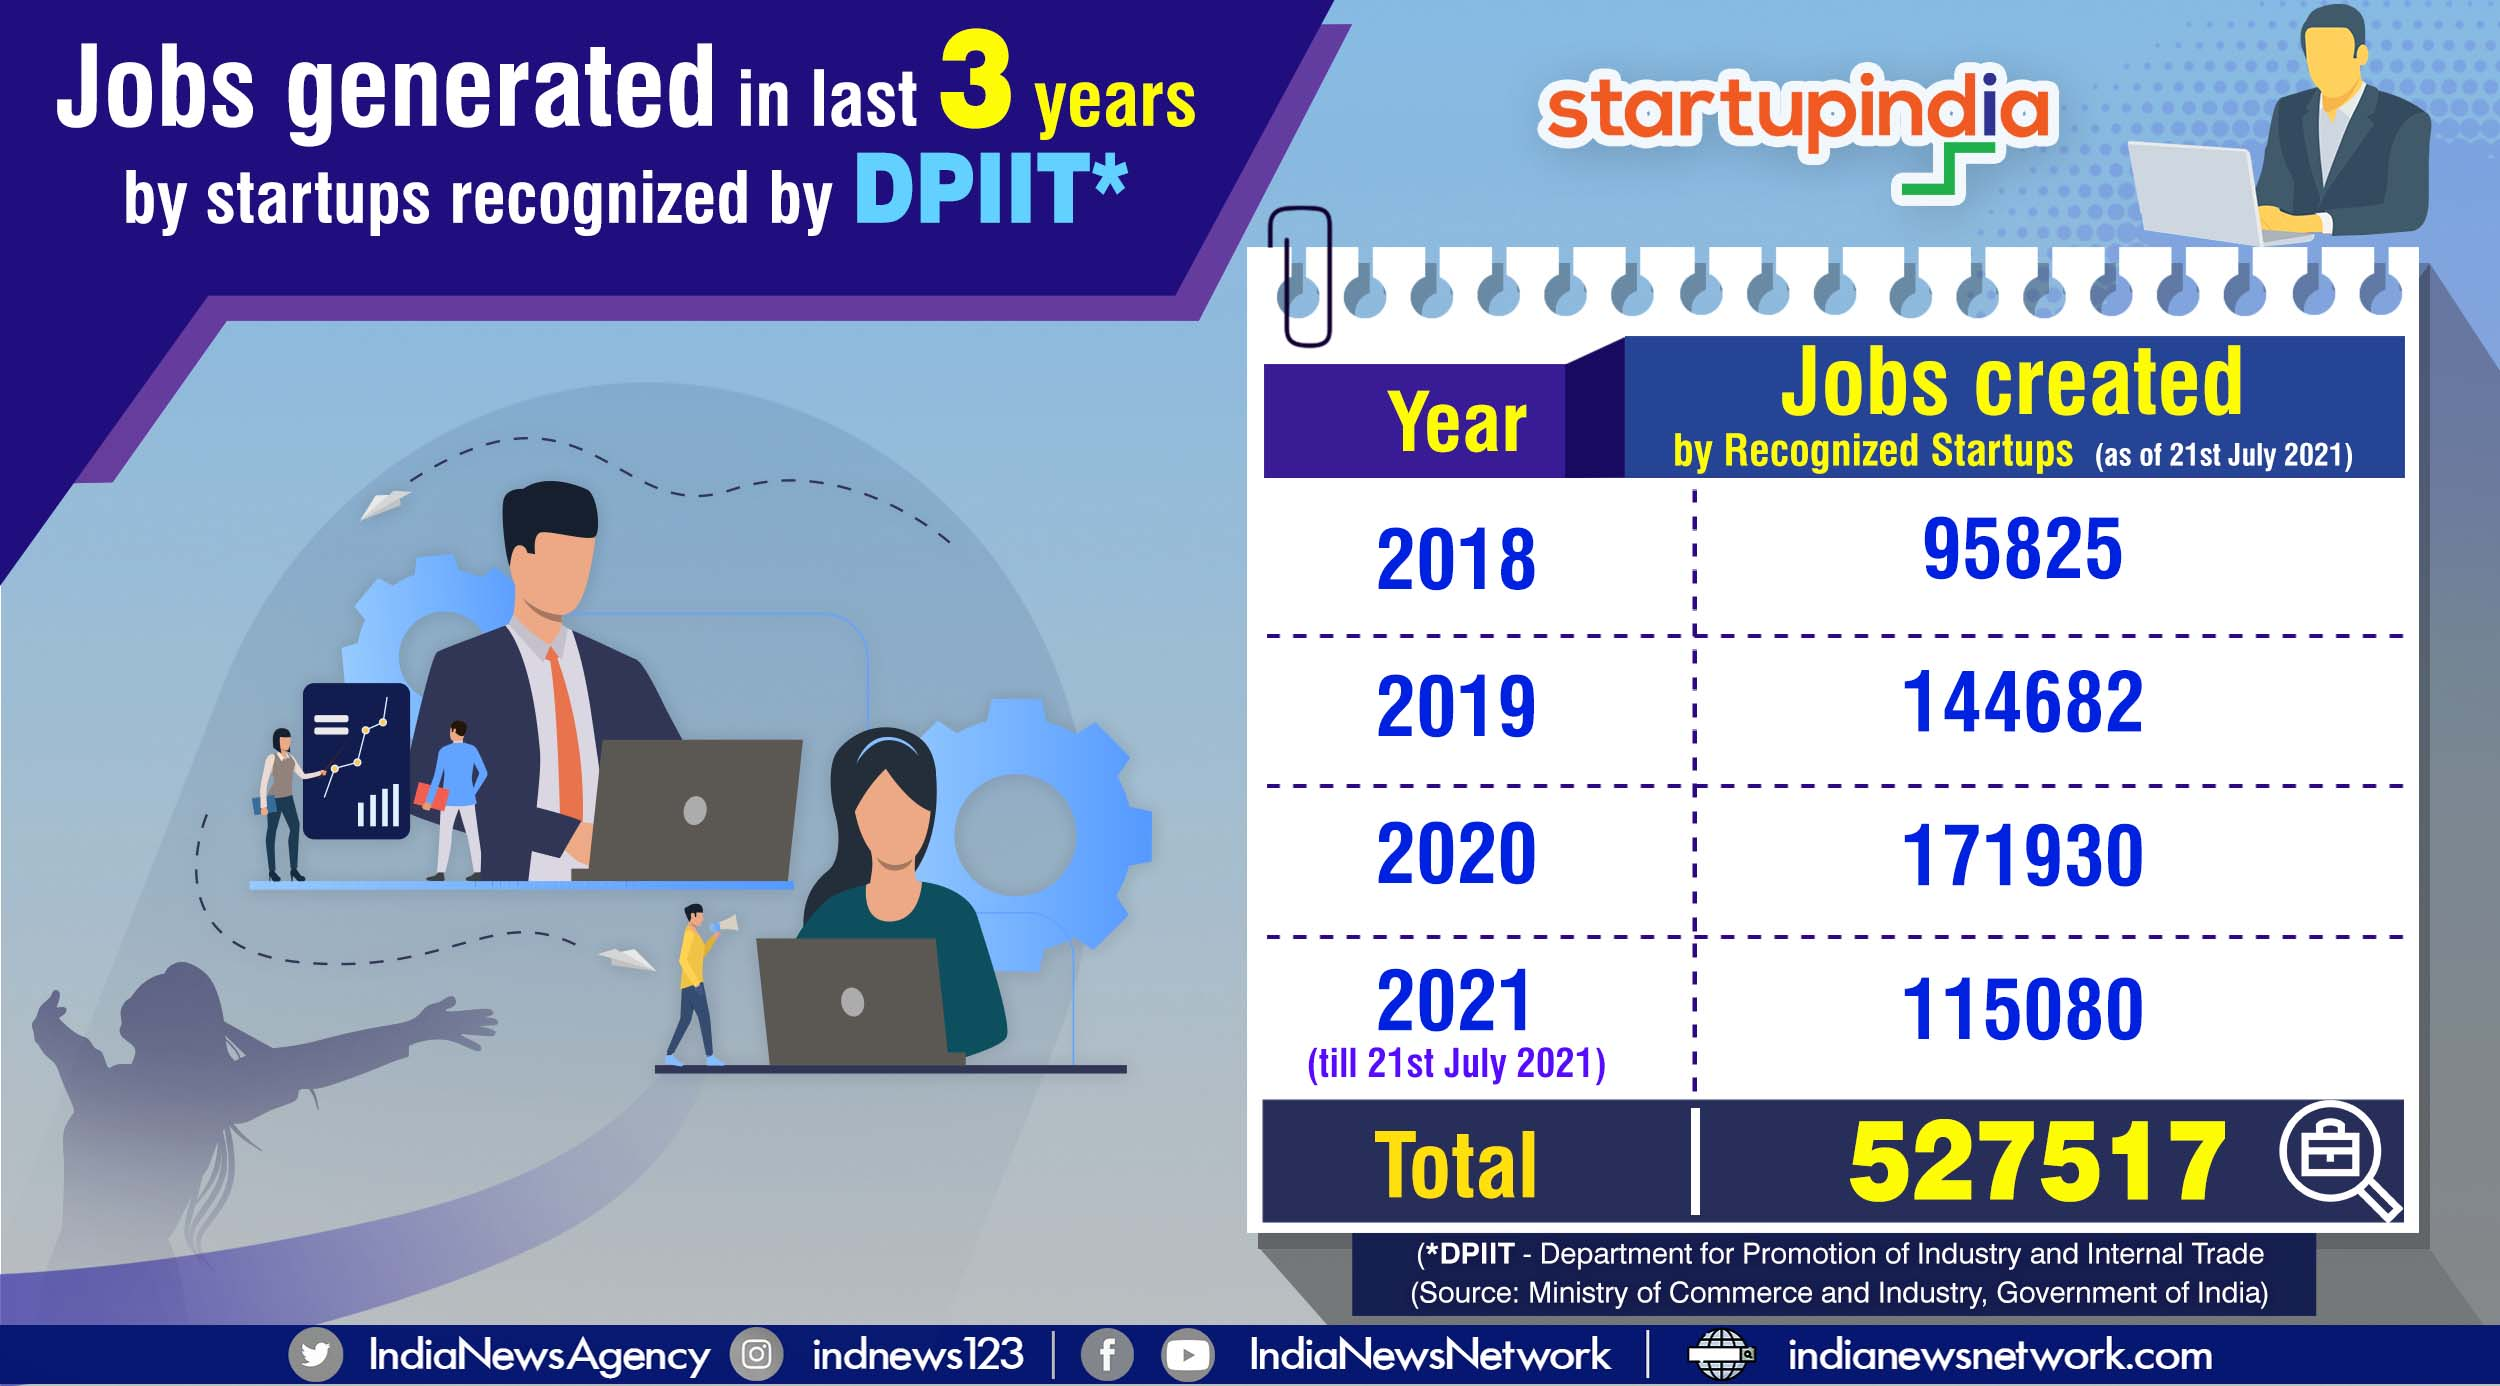 Startups have created over 5 lakh jobs in India